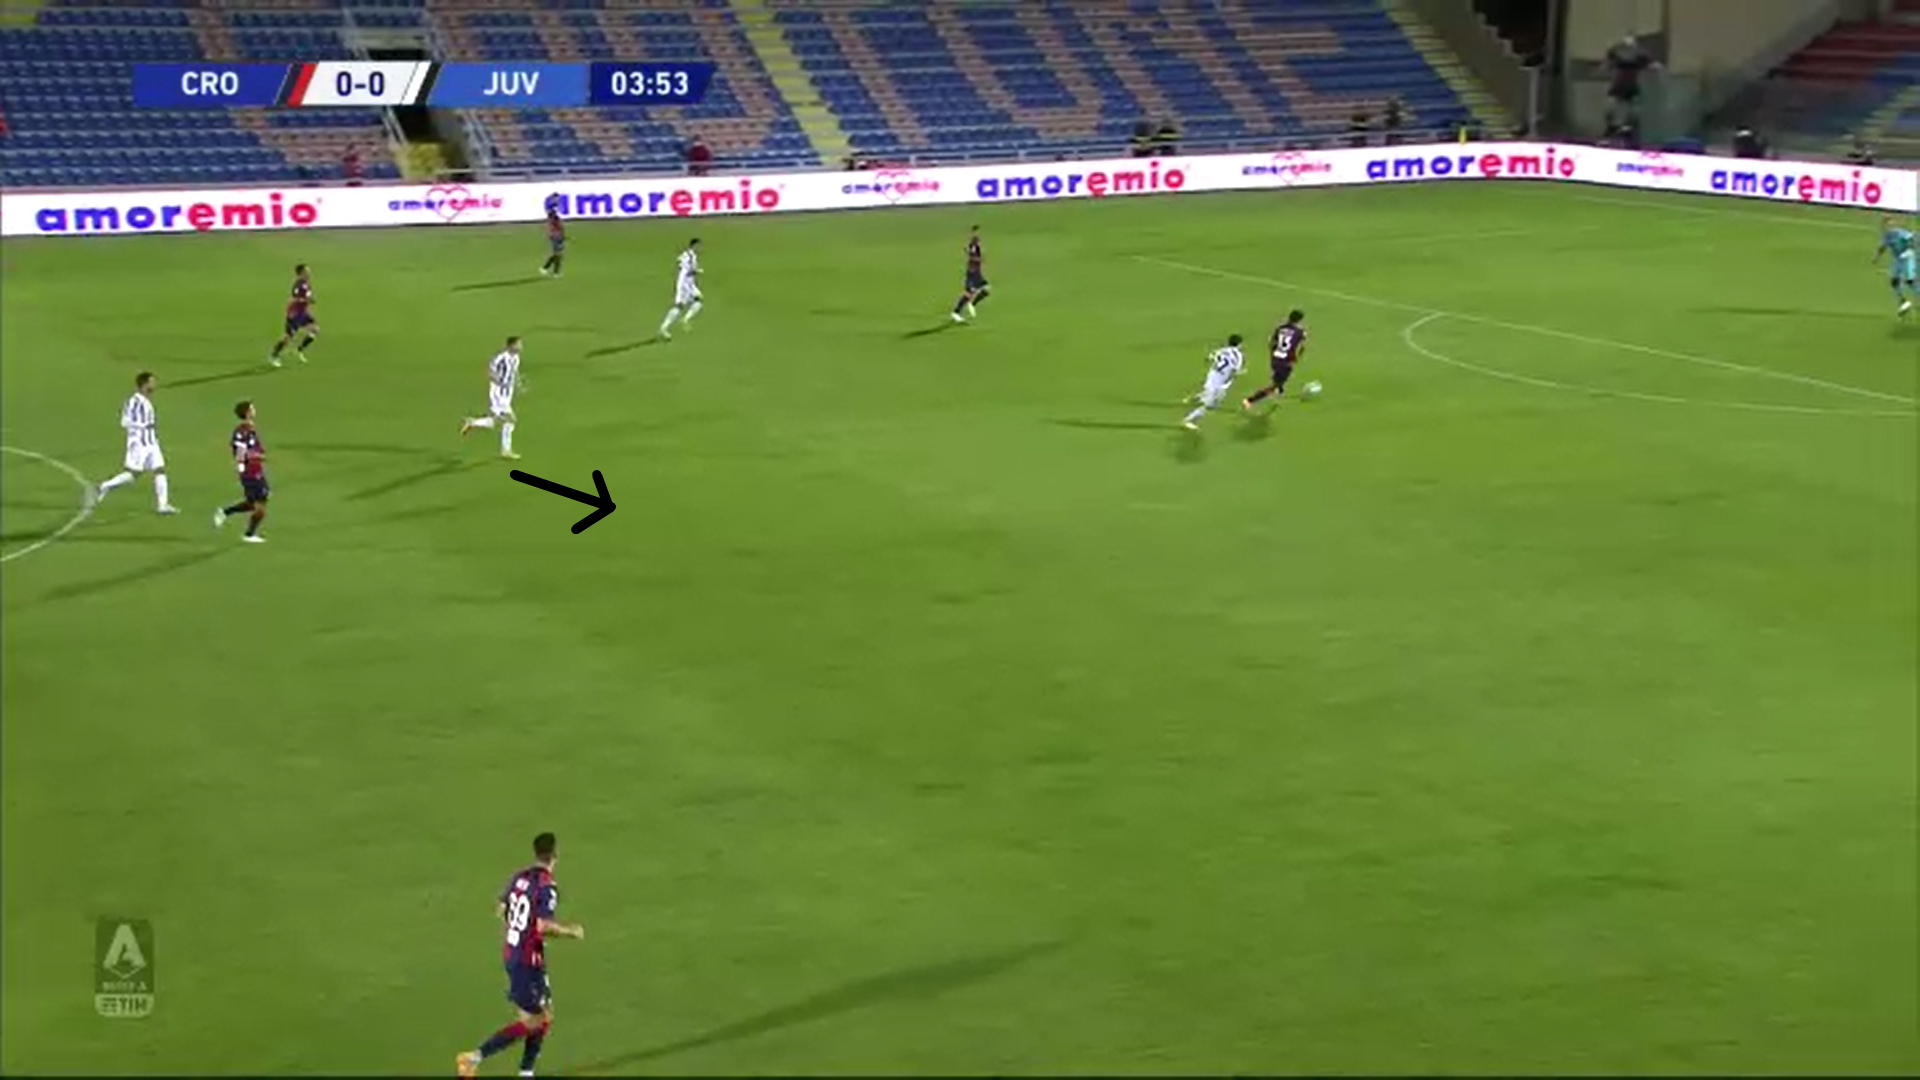 Serie A 2020/21: Crotone vs Juventus – tactical analysis tactics